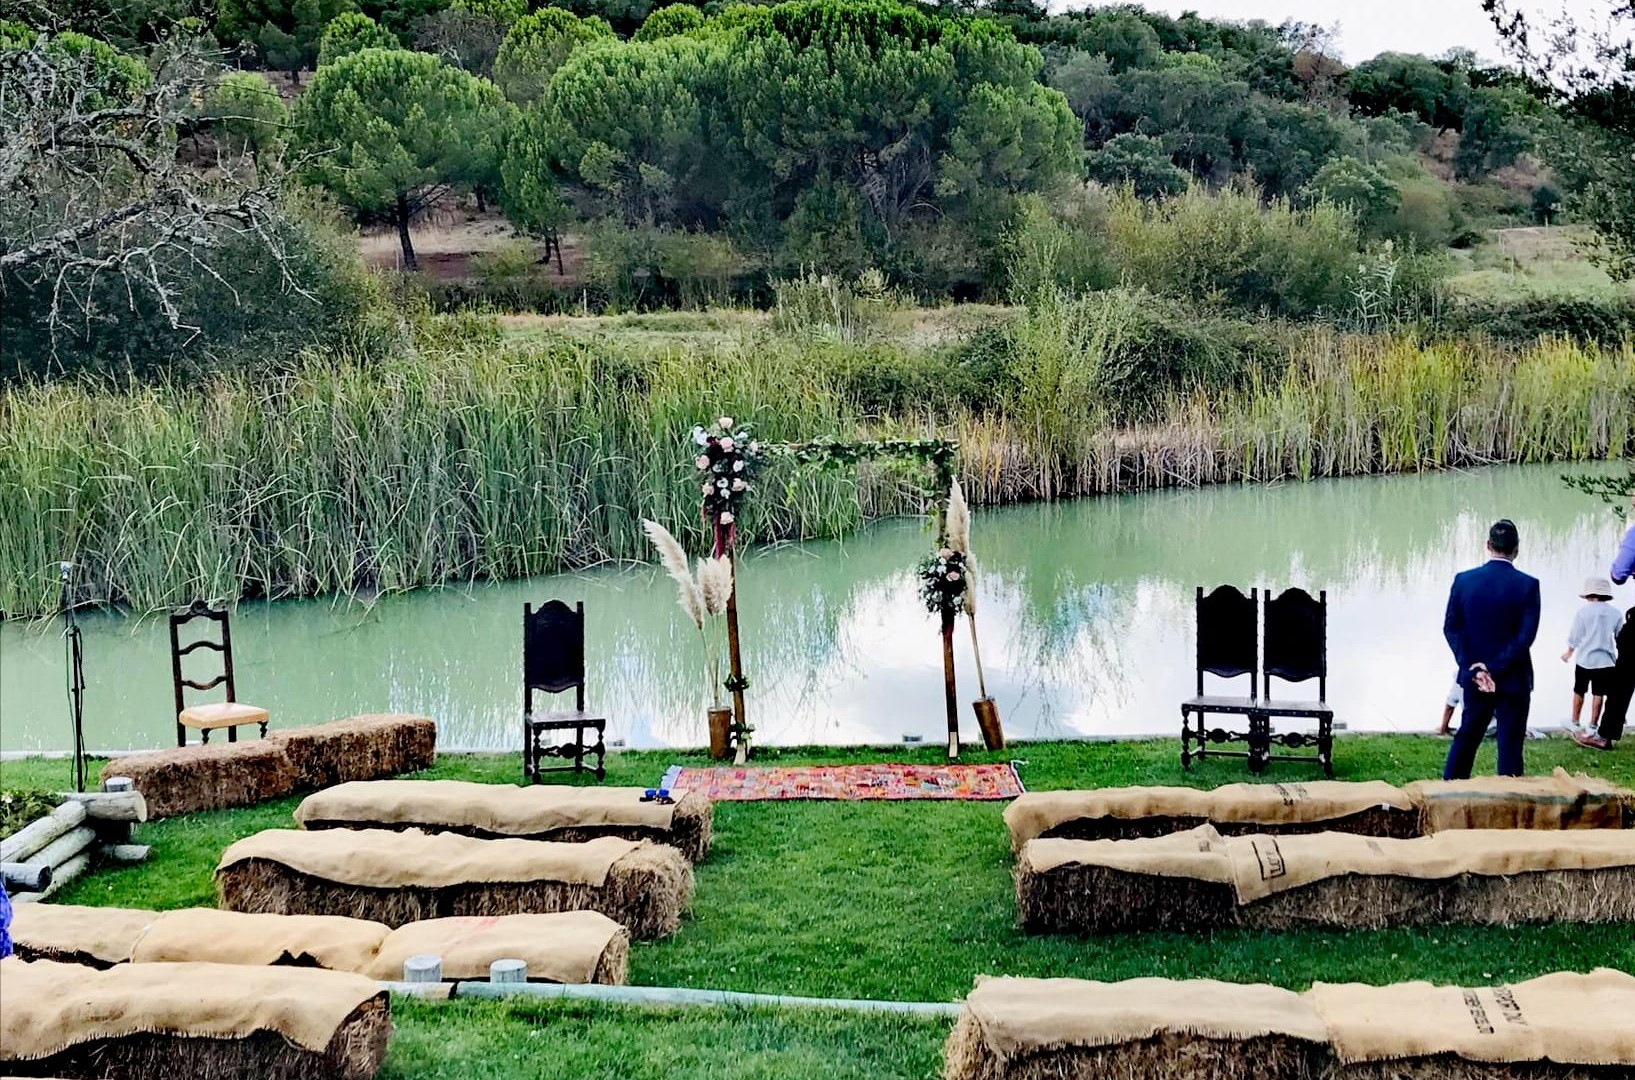 Symbolic wedding ceremony at the lake in barn style